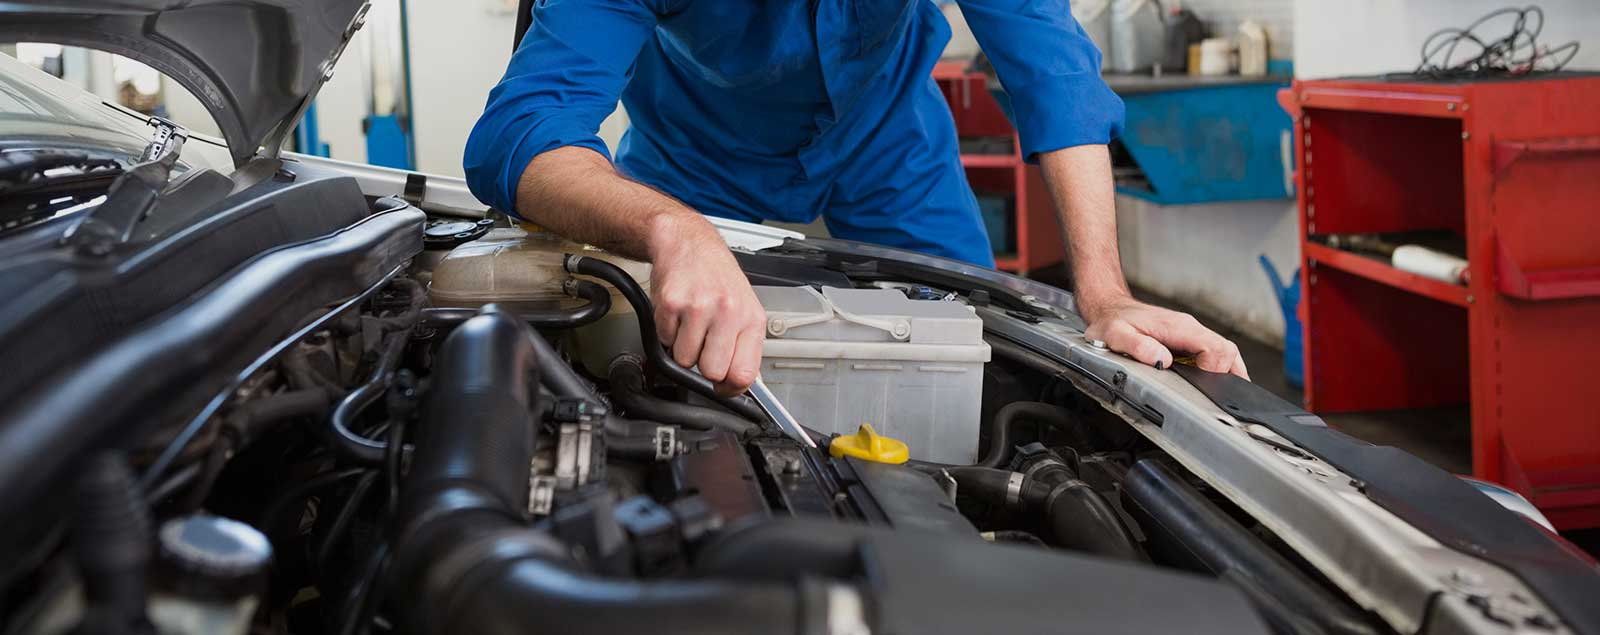 Auto Repair and body repair in Wenatchee